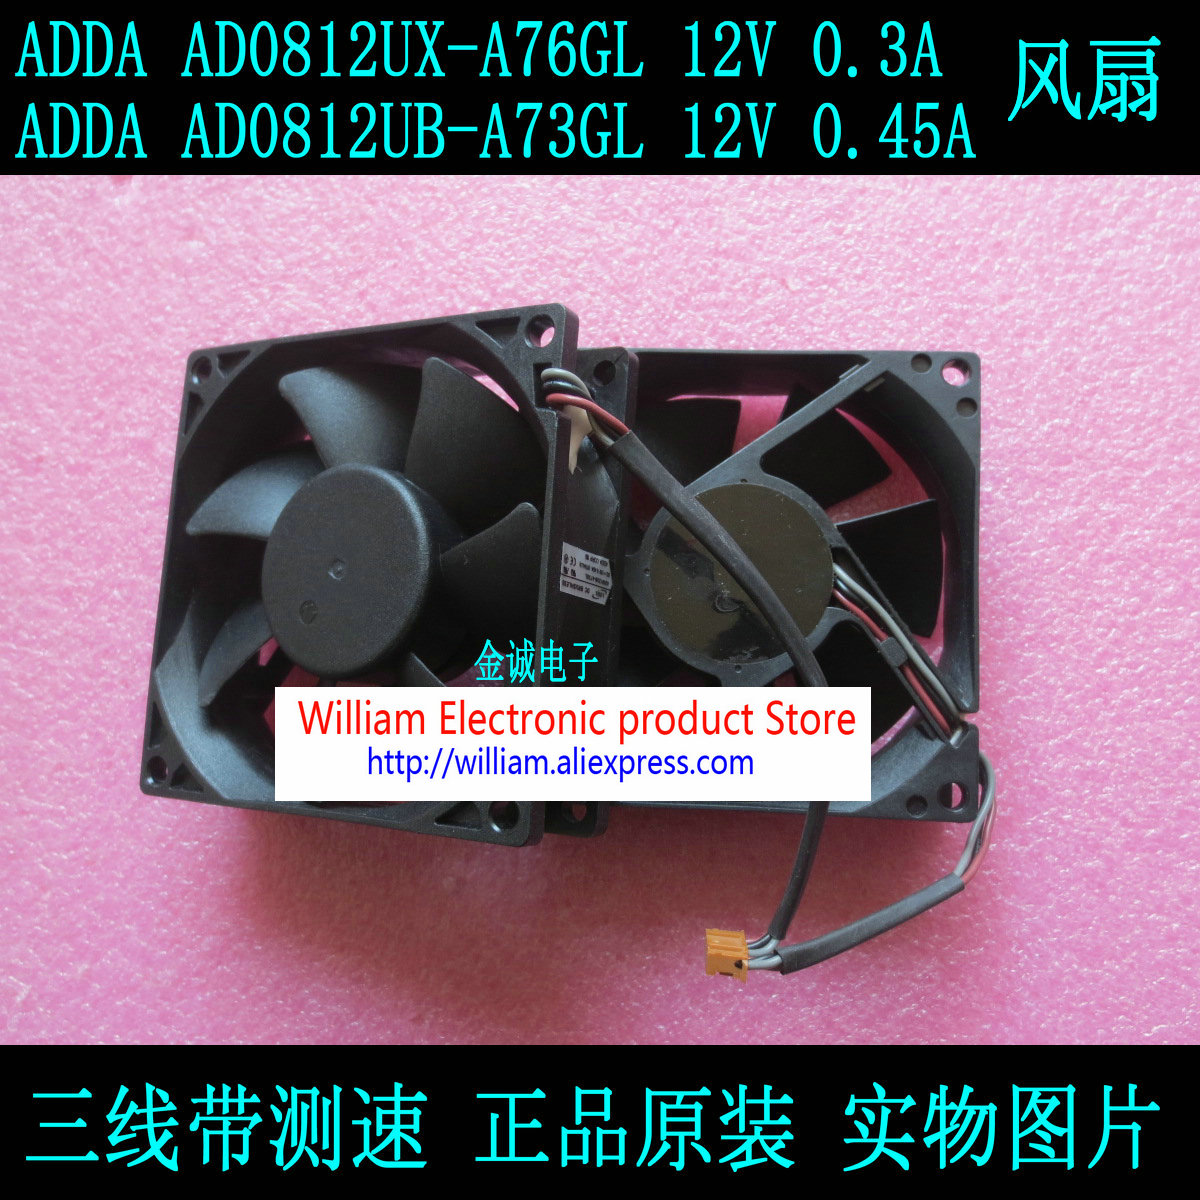 New Original ADDA ad8012ub-a73gl 12v 0.45a ad8012ux-a76gl 12v 0.3a Double Projector Cooling Fan